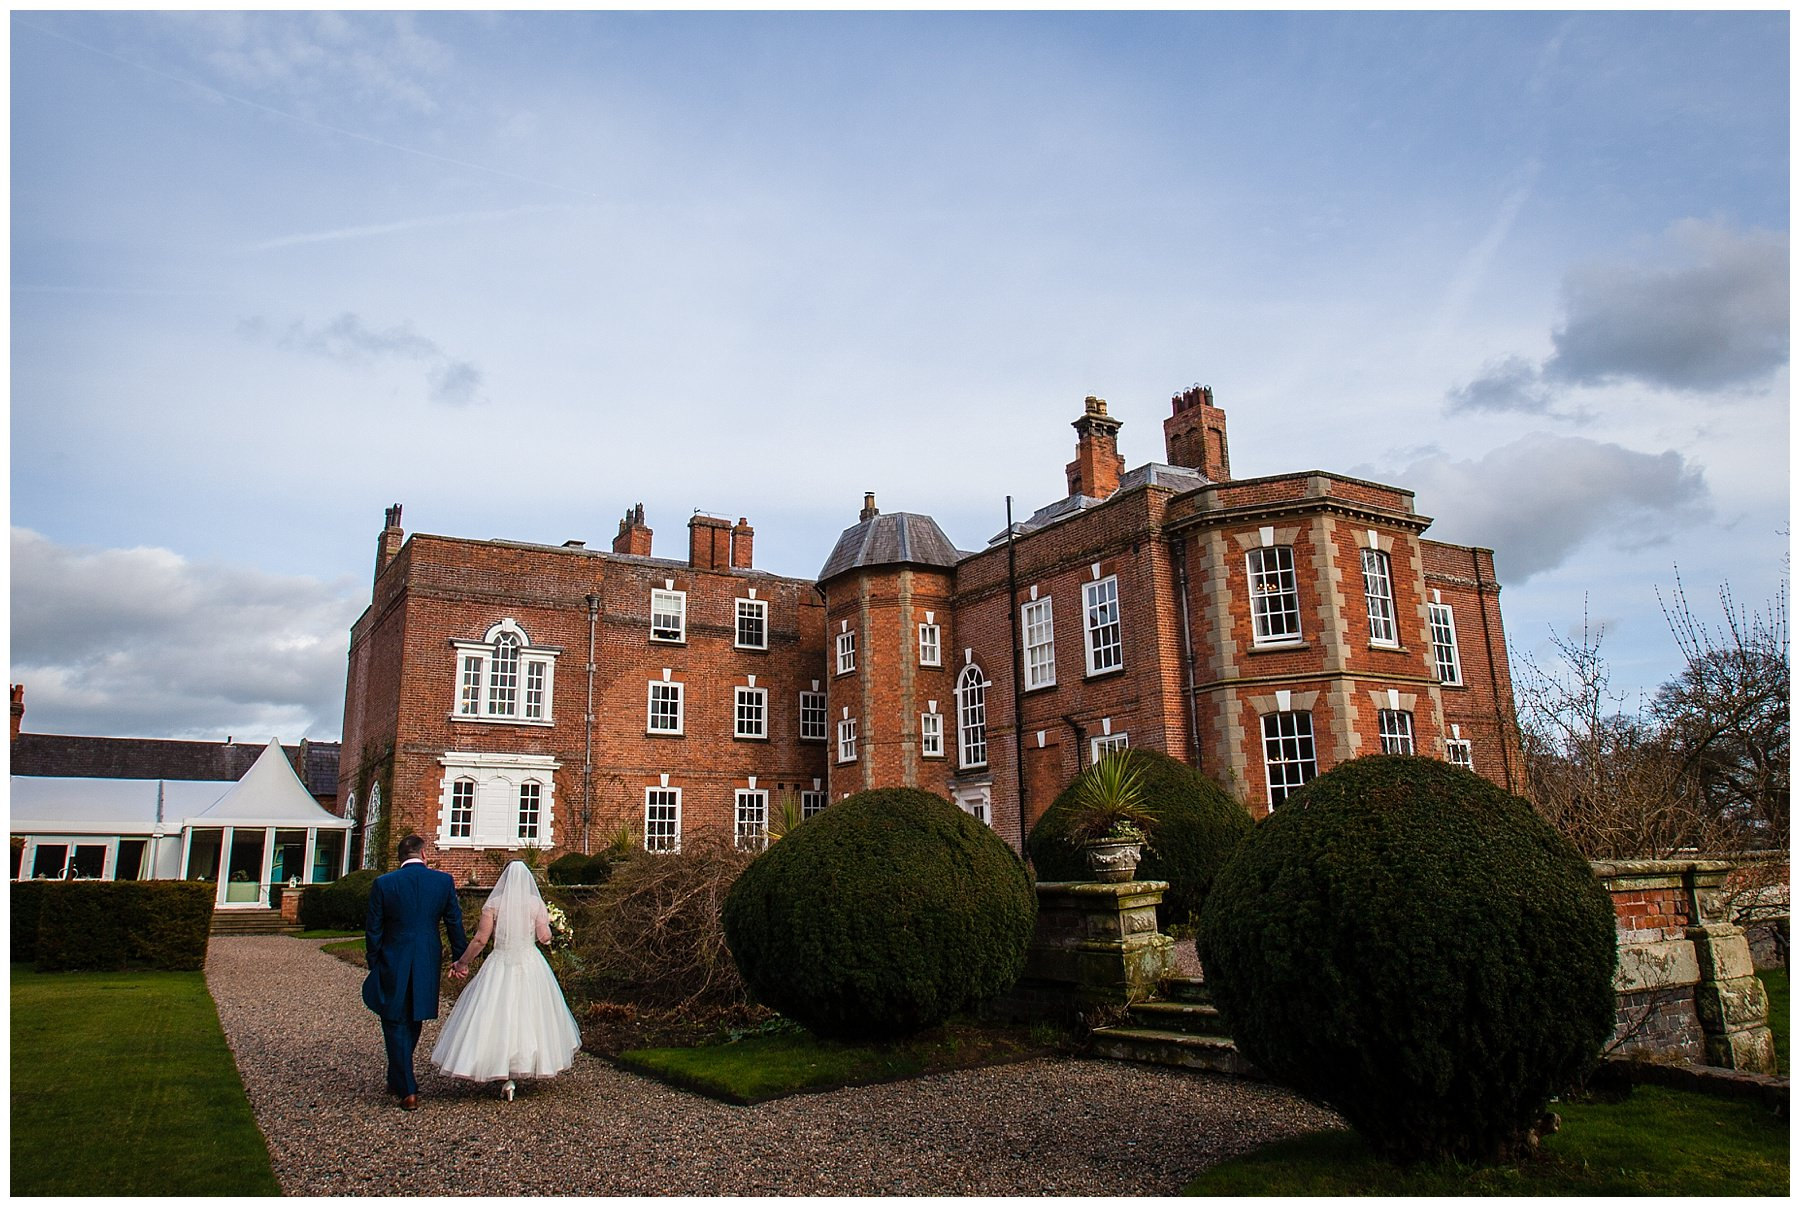 bride and groom walking back to the wedding reception in iscoyd park - charlotte giddings photography